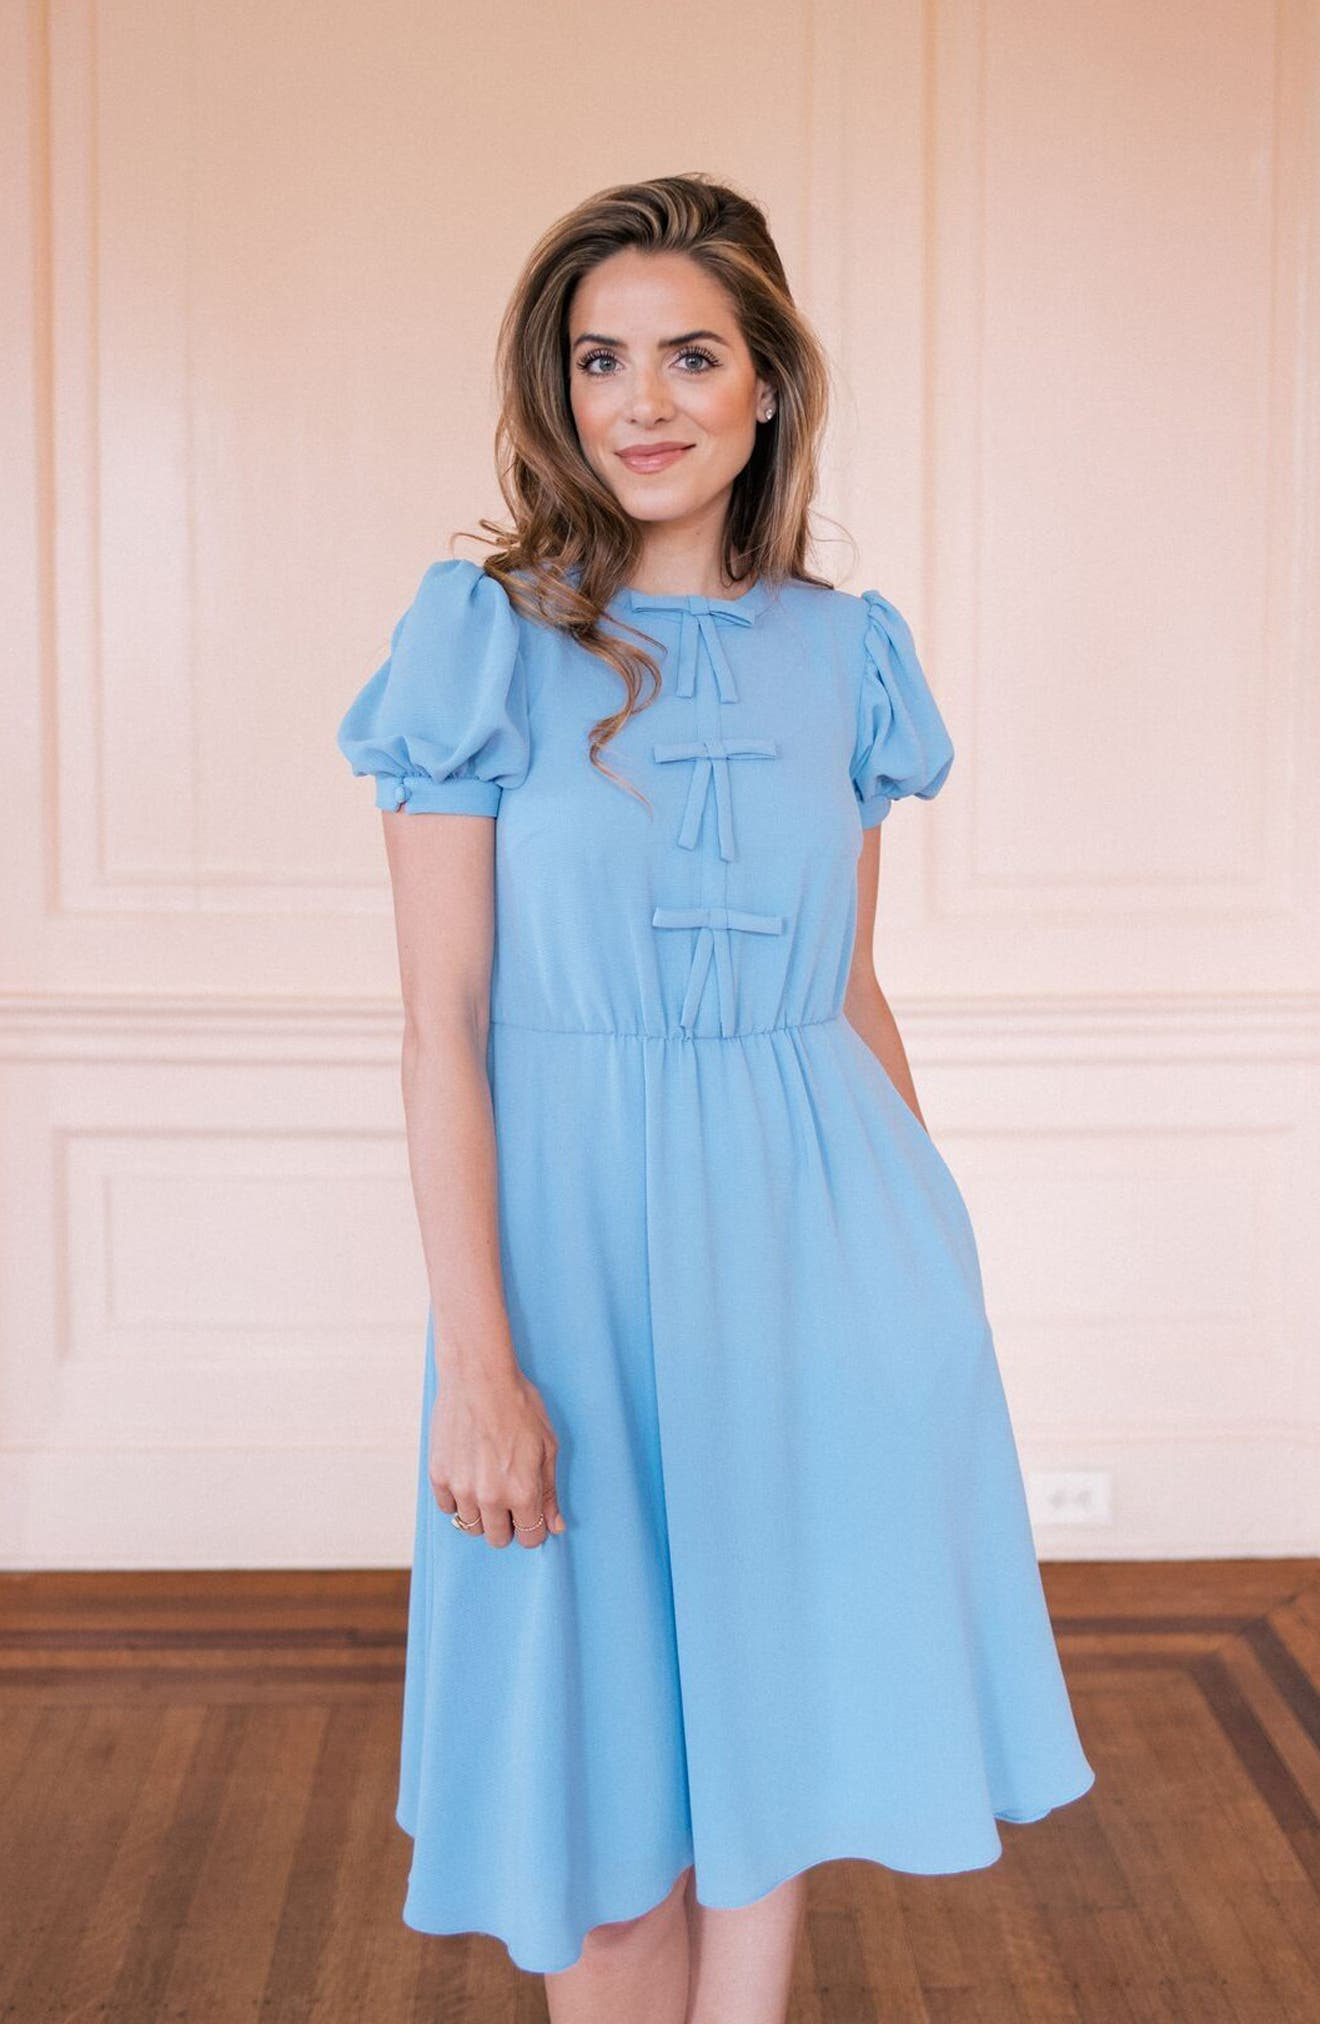 Ellie Crepe Puff Sleeve Dress,                             Alternate thumbnail 2, color,                             Sky Blue